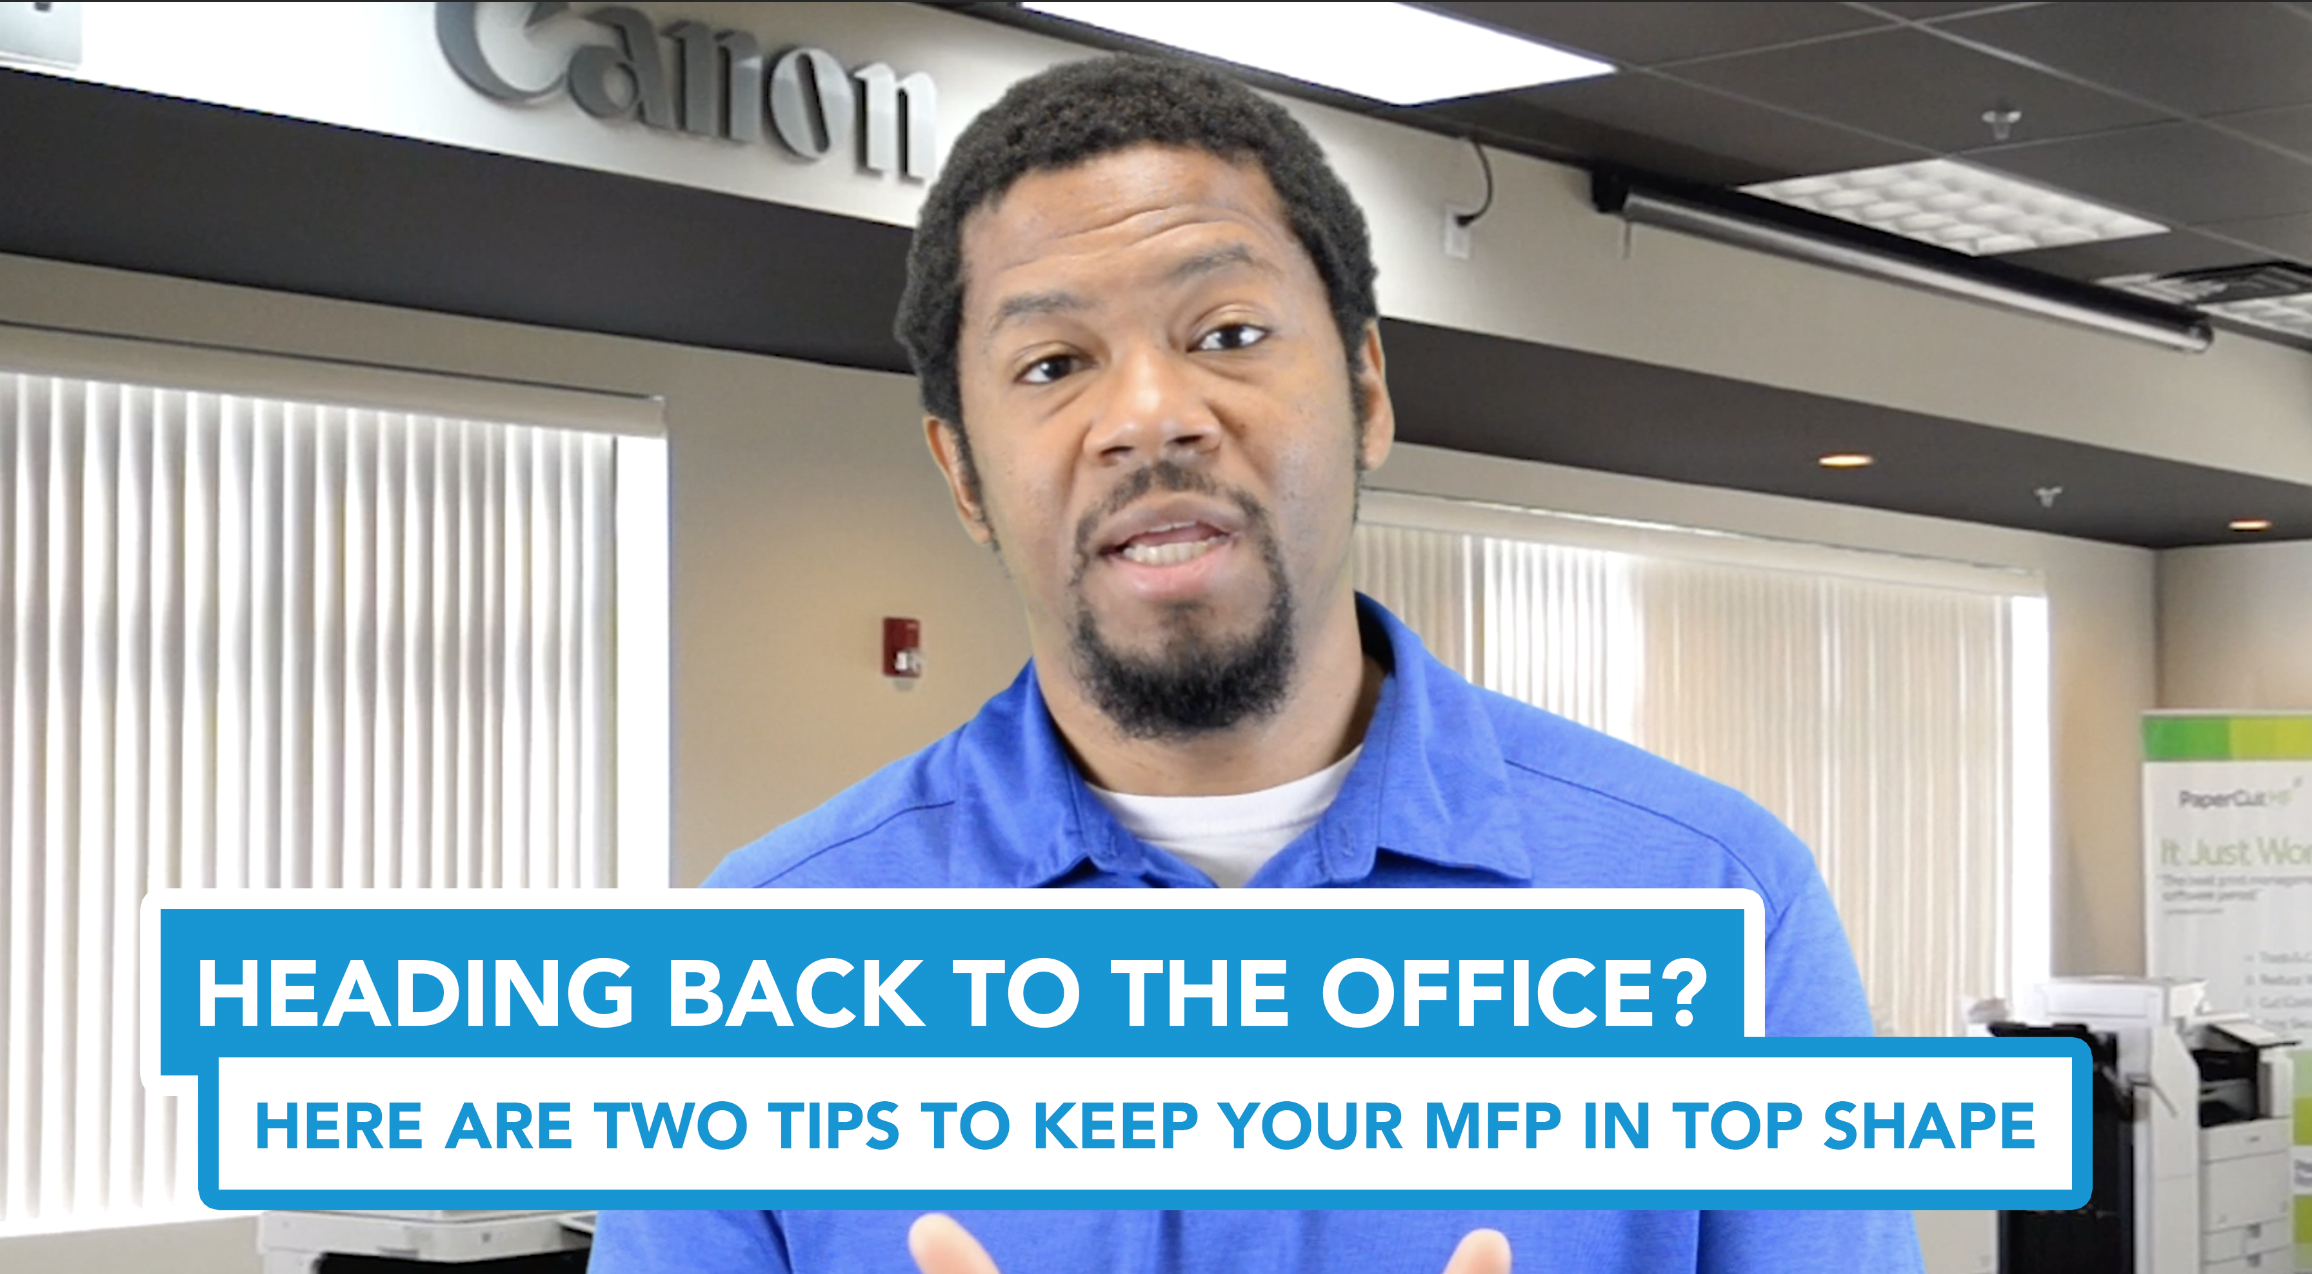 Heading Back to the Office? Here Are Two Tips to Keep Your MFP in Top Shape